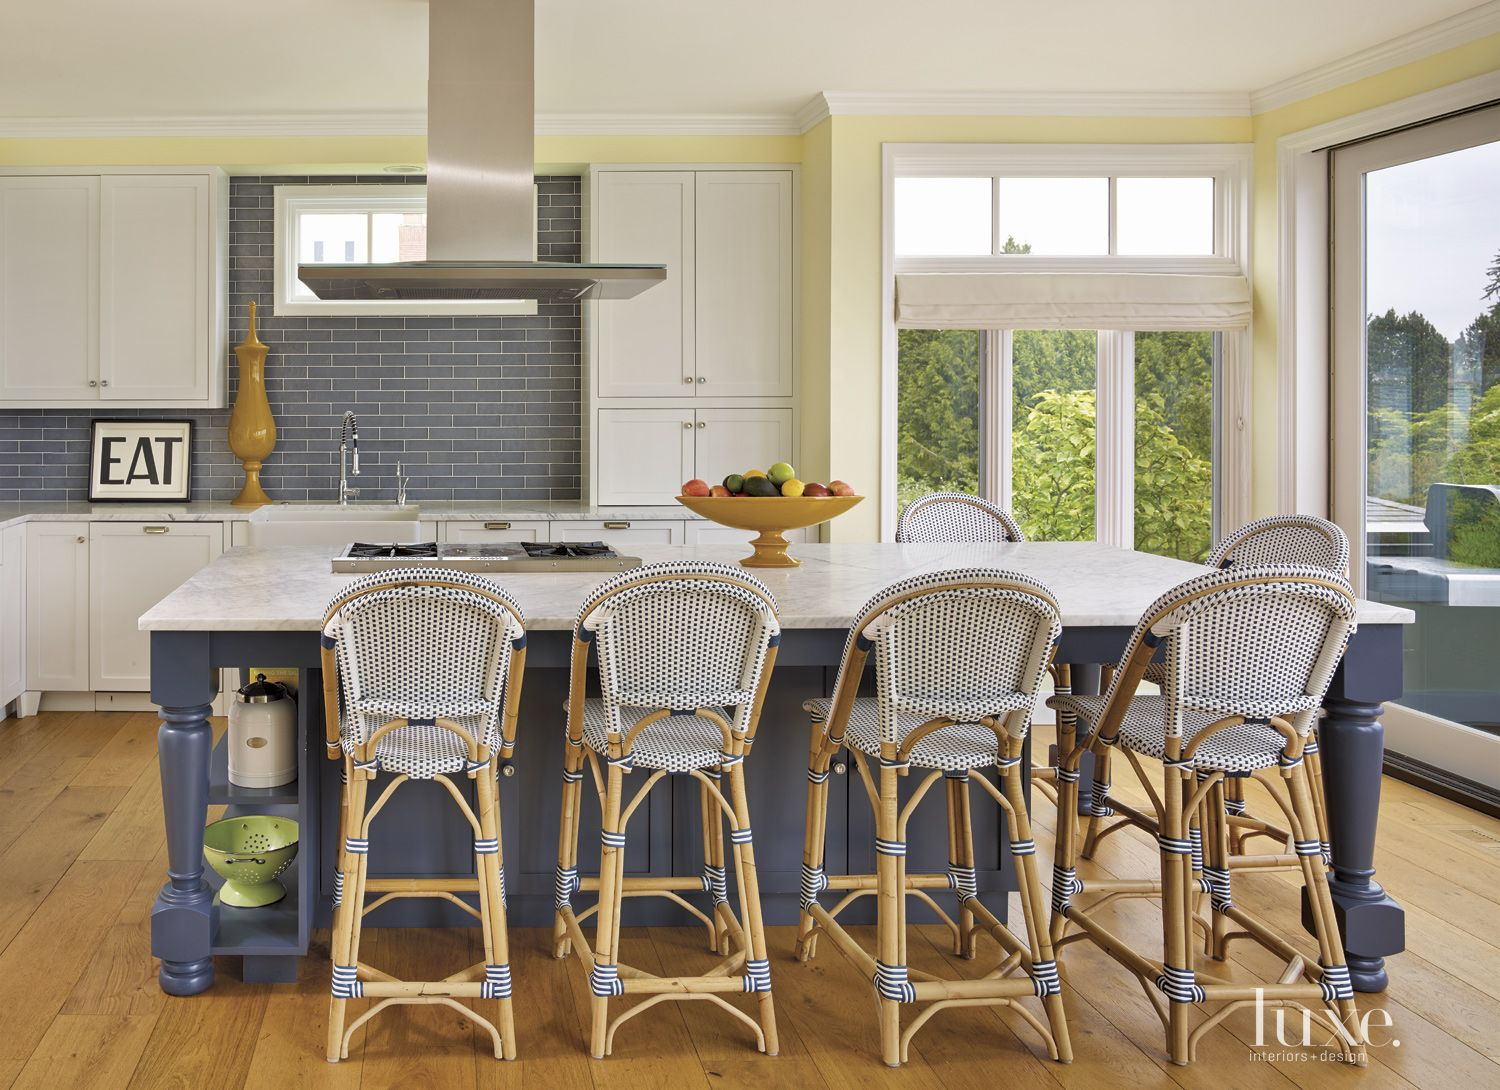 Contemporary Yellow Kitchen with Wicker Stools